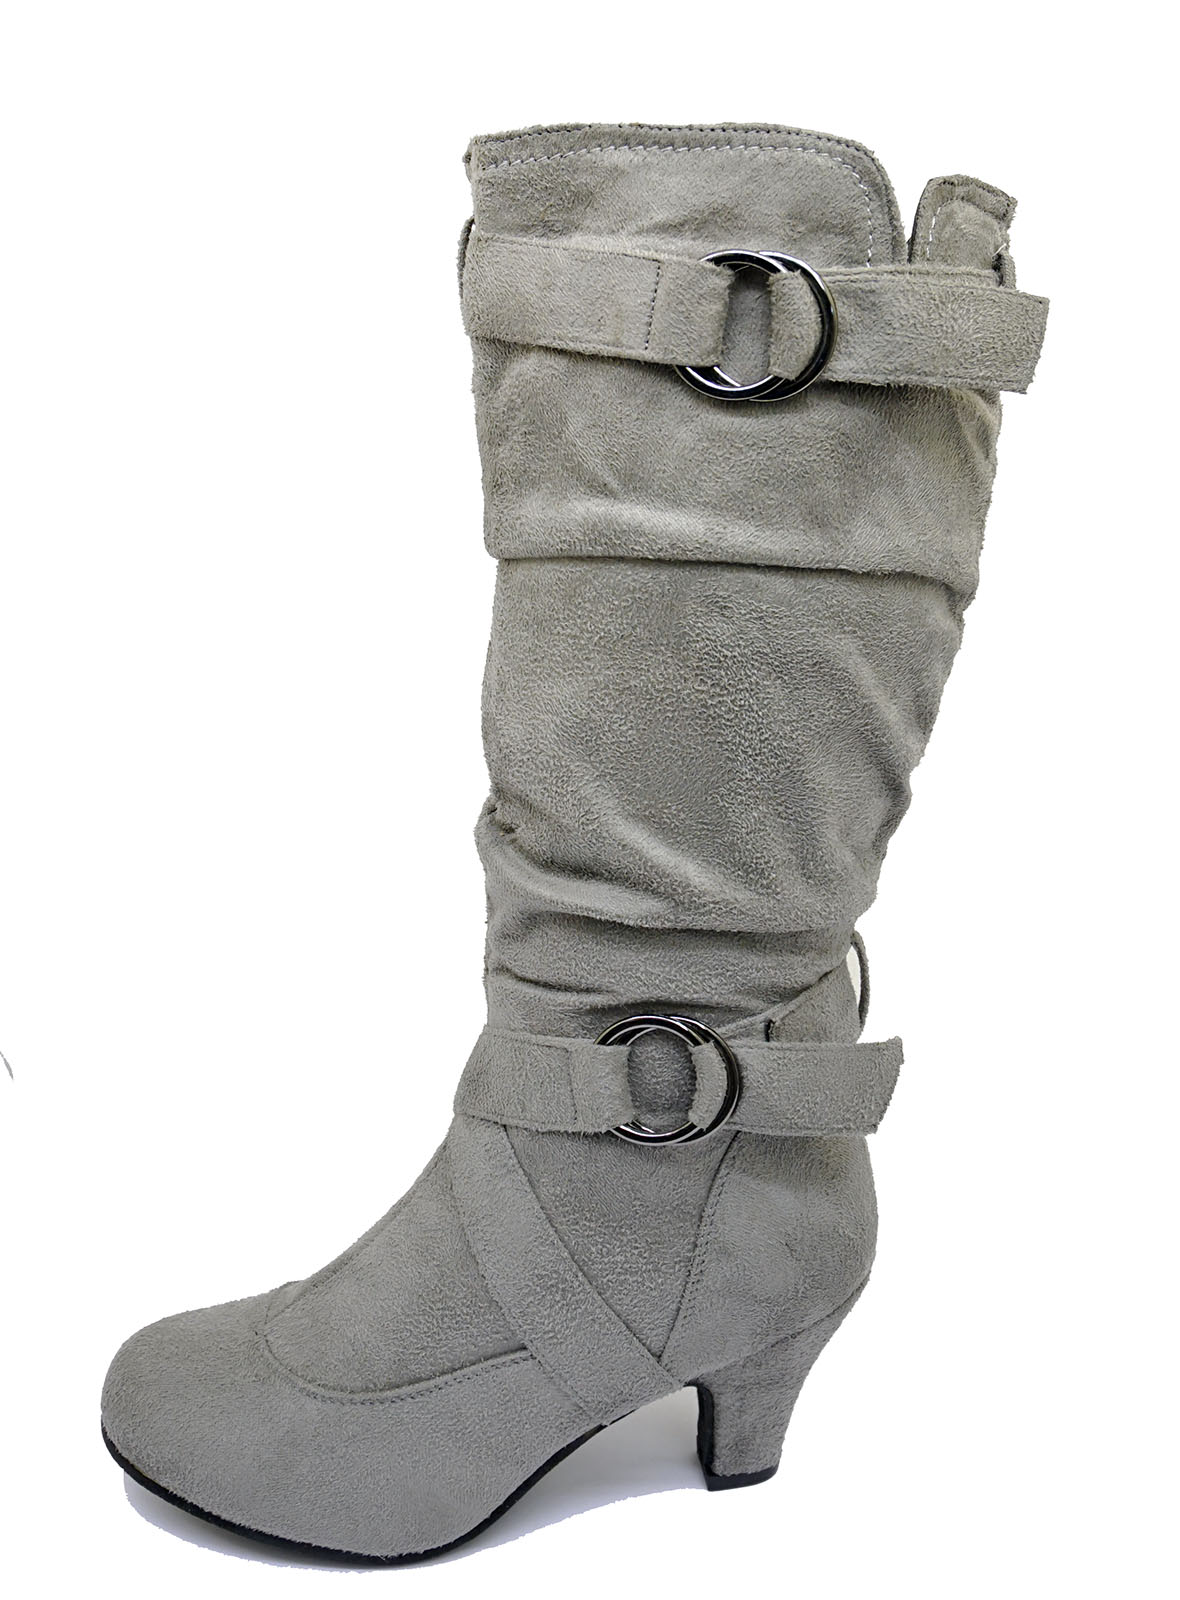 LADIES-GREY-ZIP-UP-BIKER-SLOUCH-RUCHED-TALL-KNEE-CALF-LOW-HEEL-BOOTS-SHOES-4-10 thumbnail 15